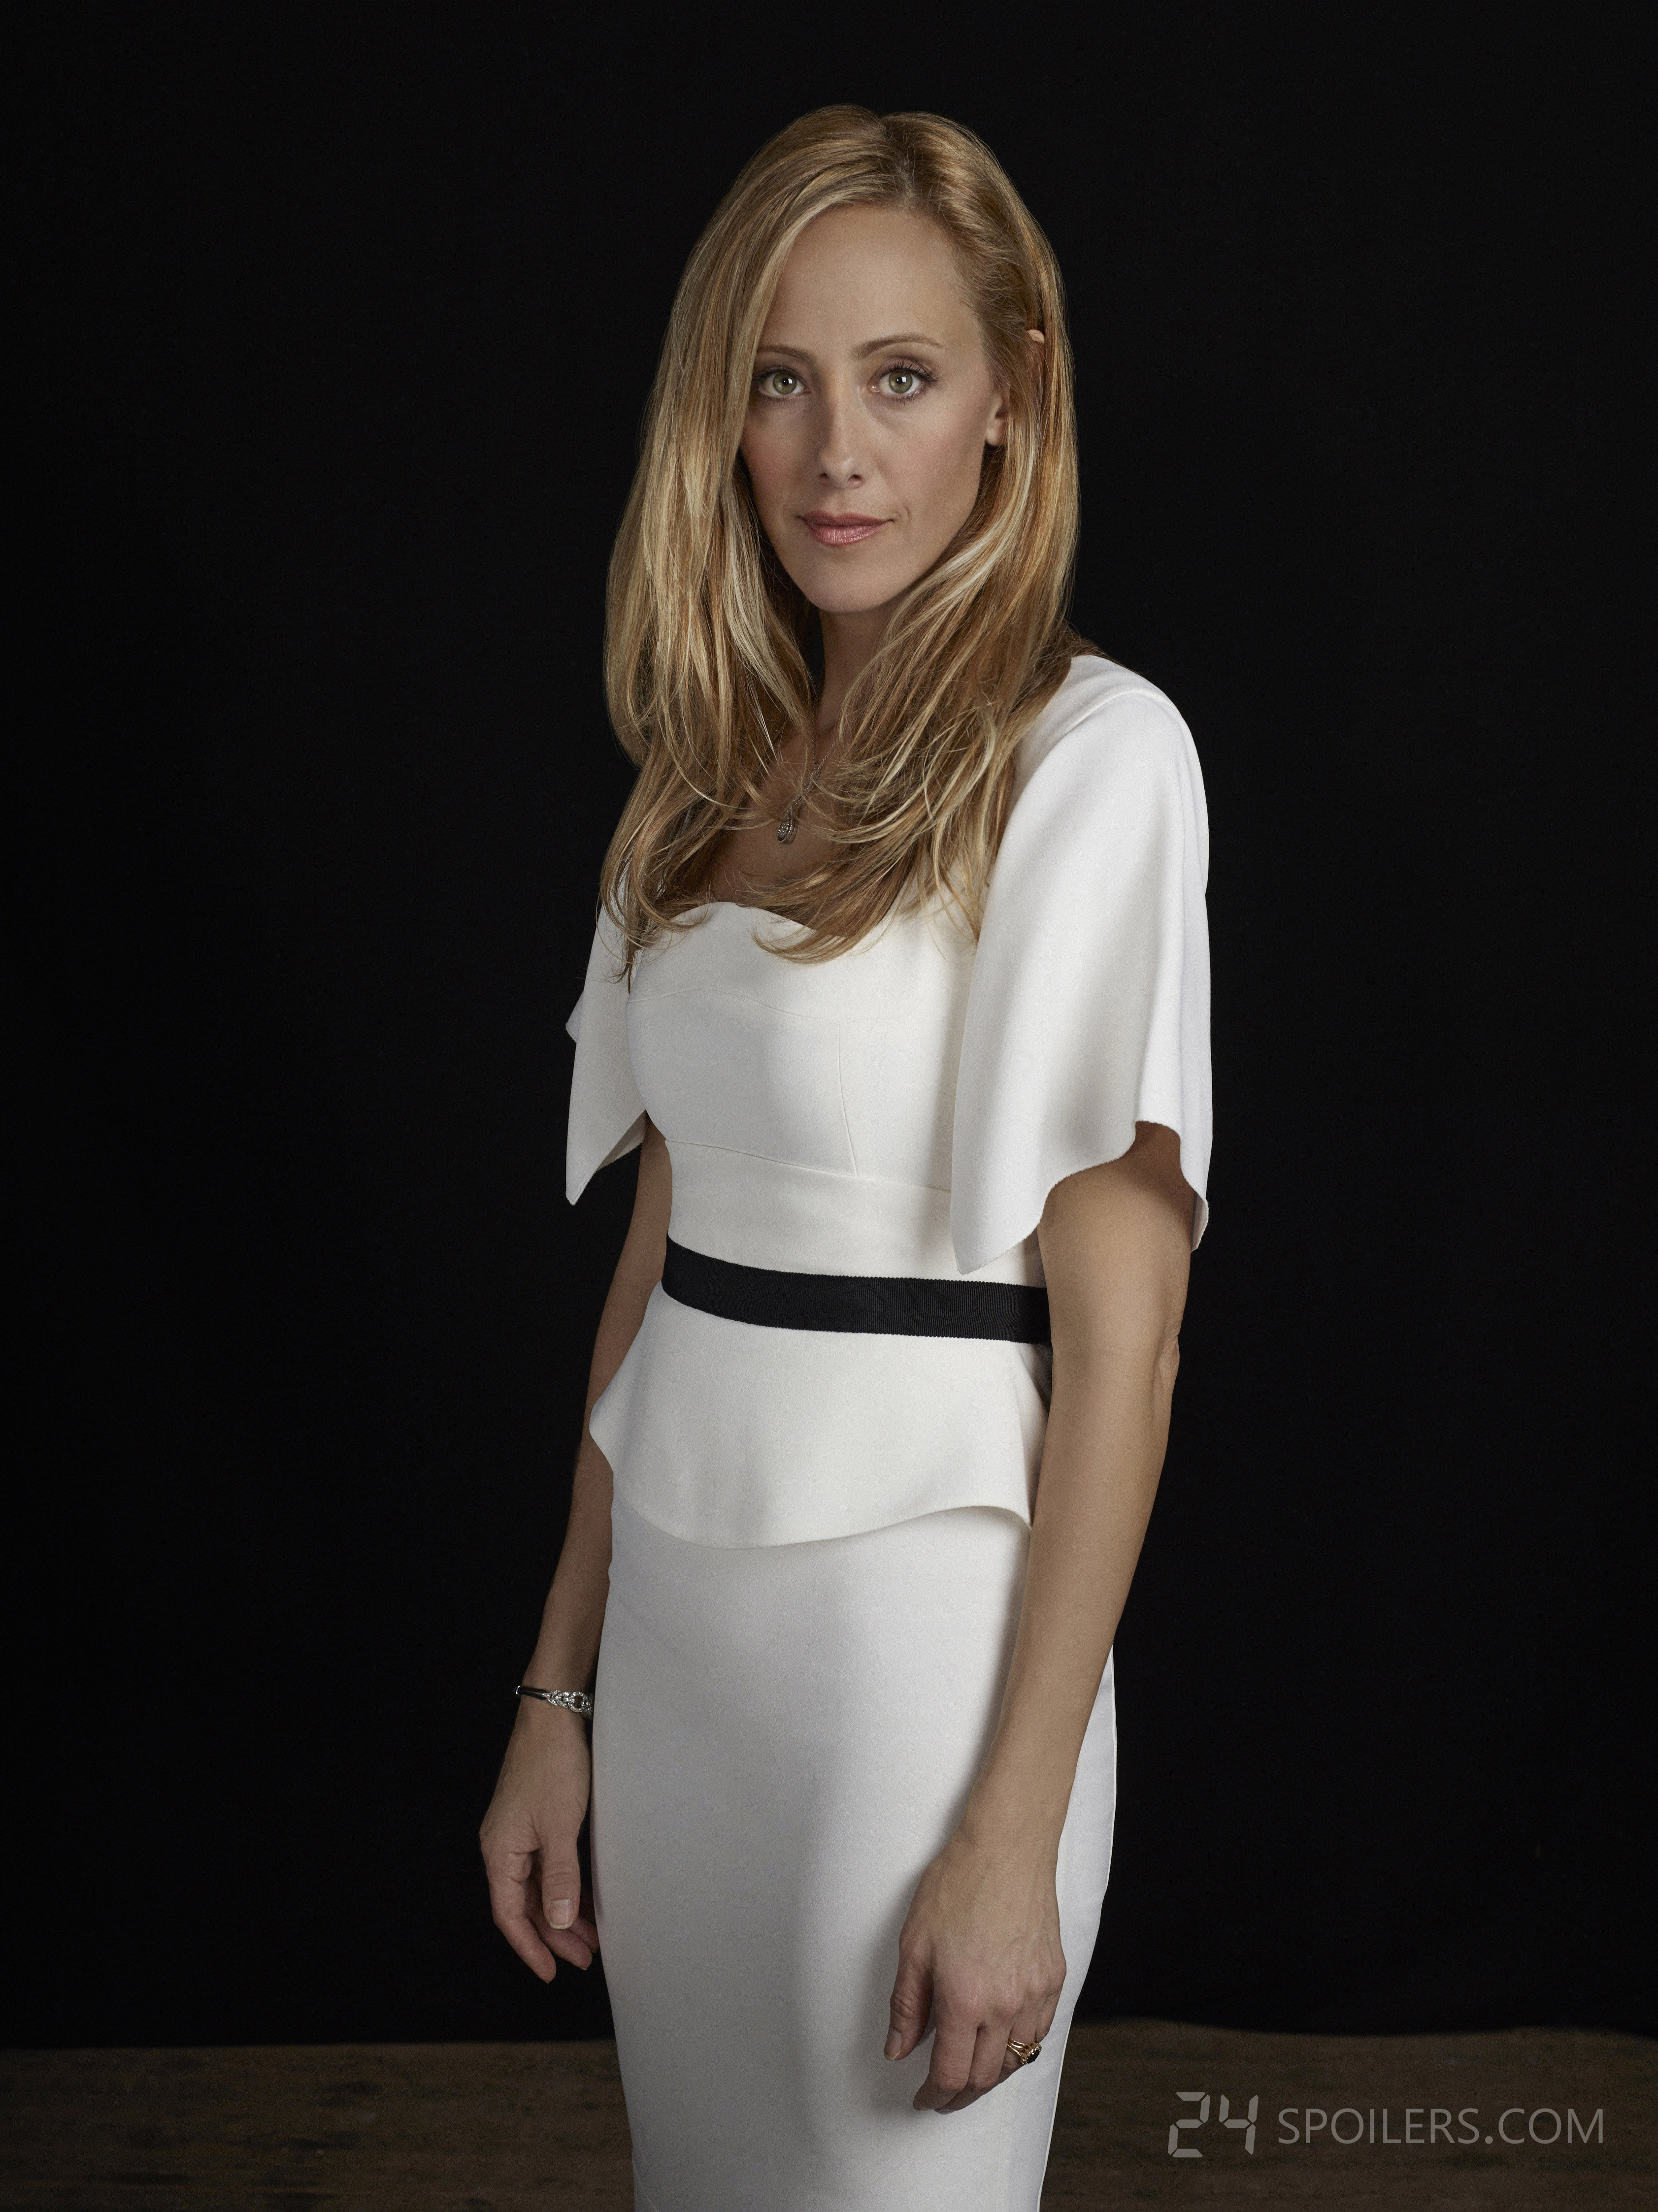 Kim Raver as Audrey in 24: Live Another Day - 24 Spoilers